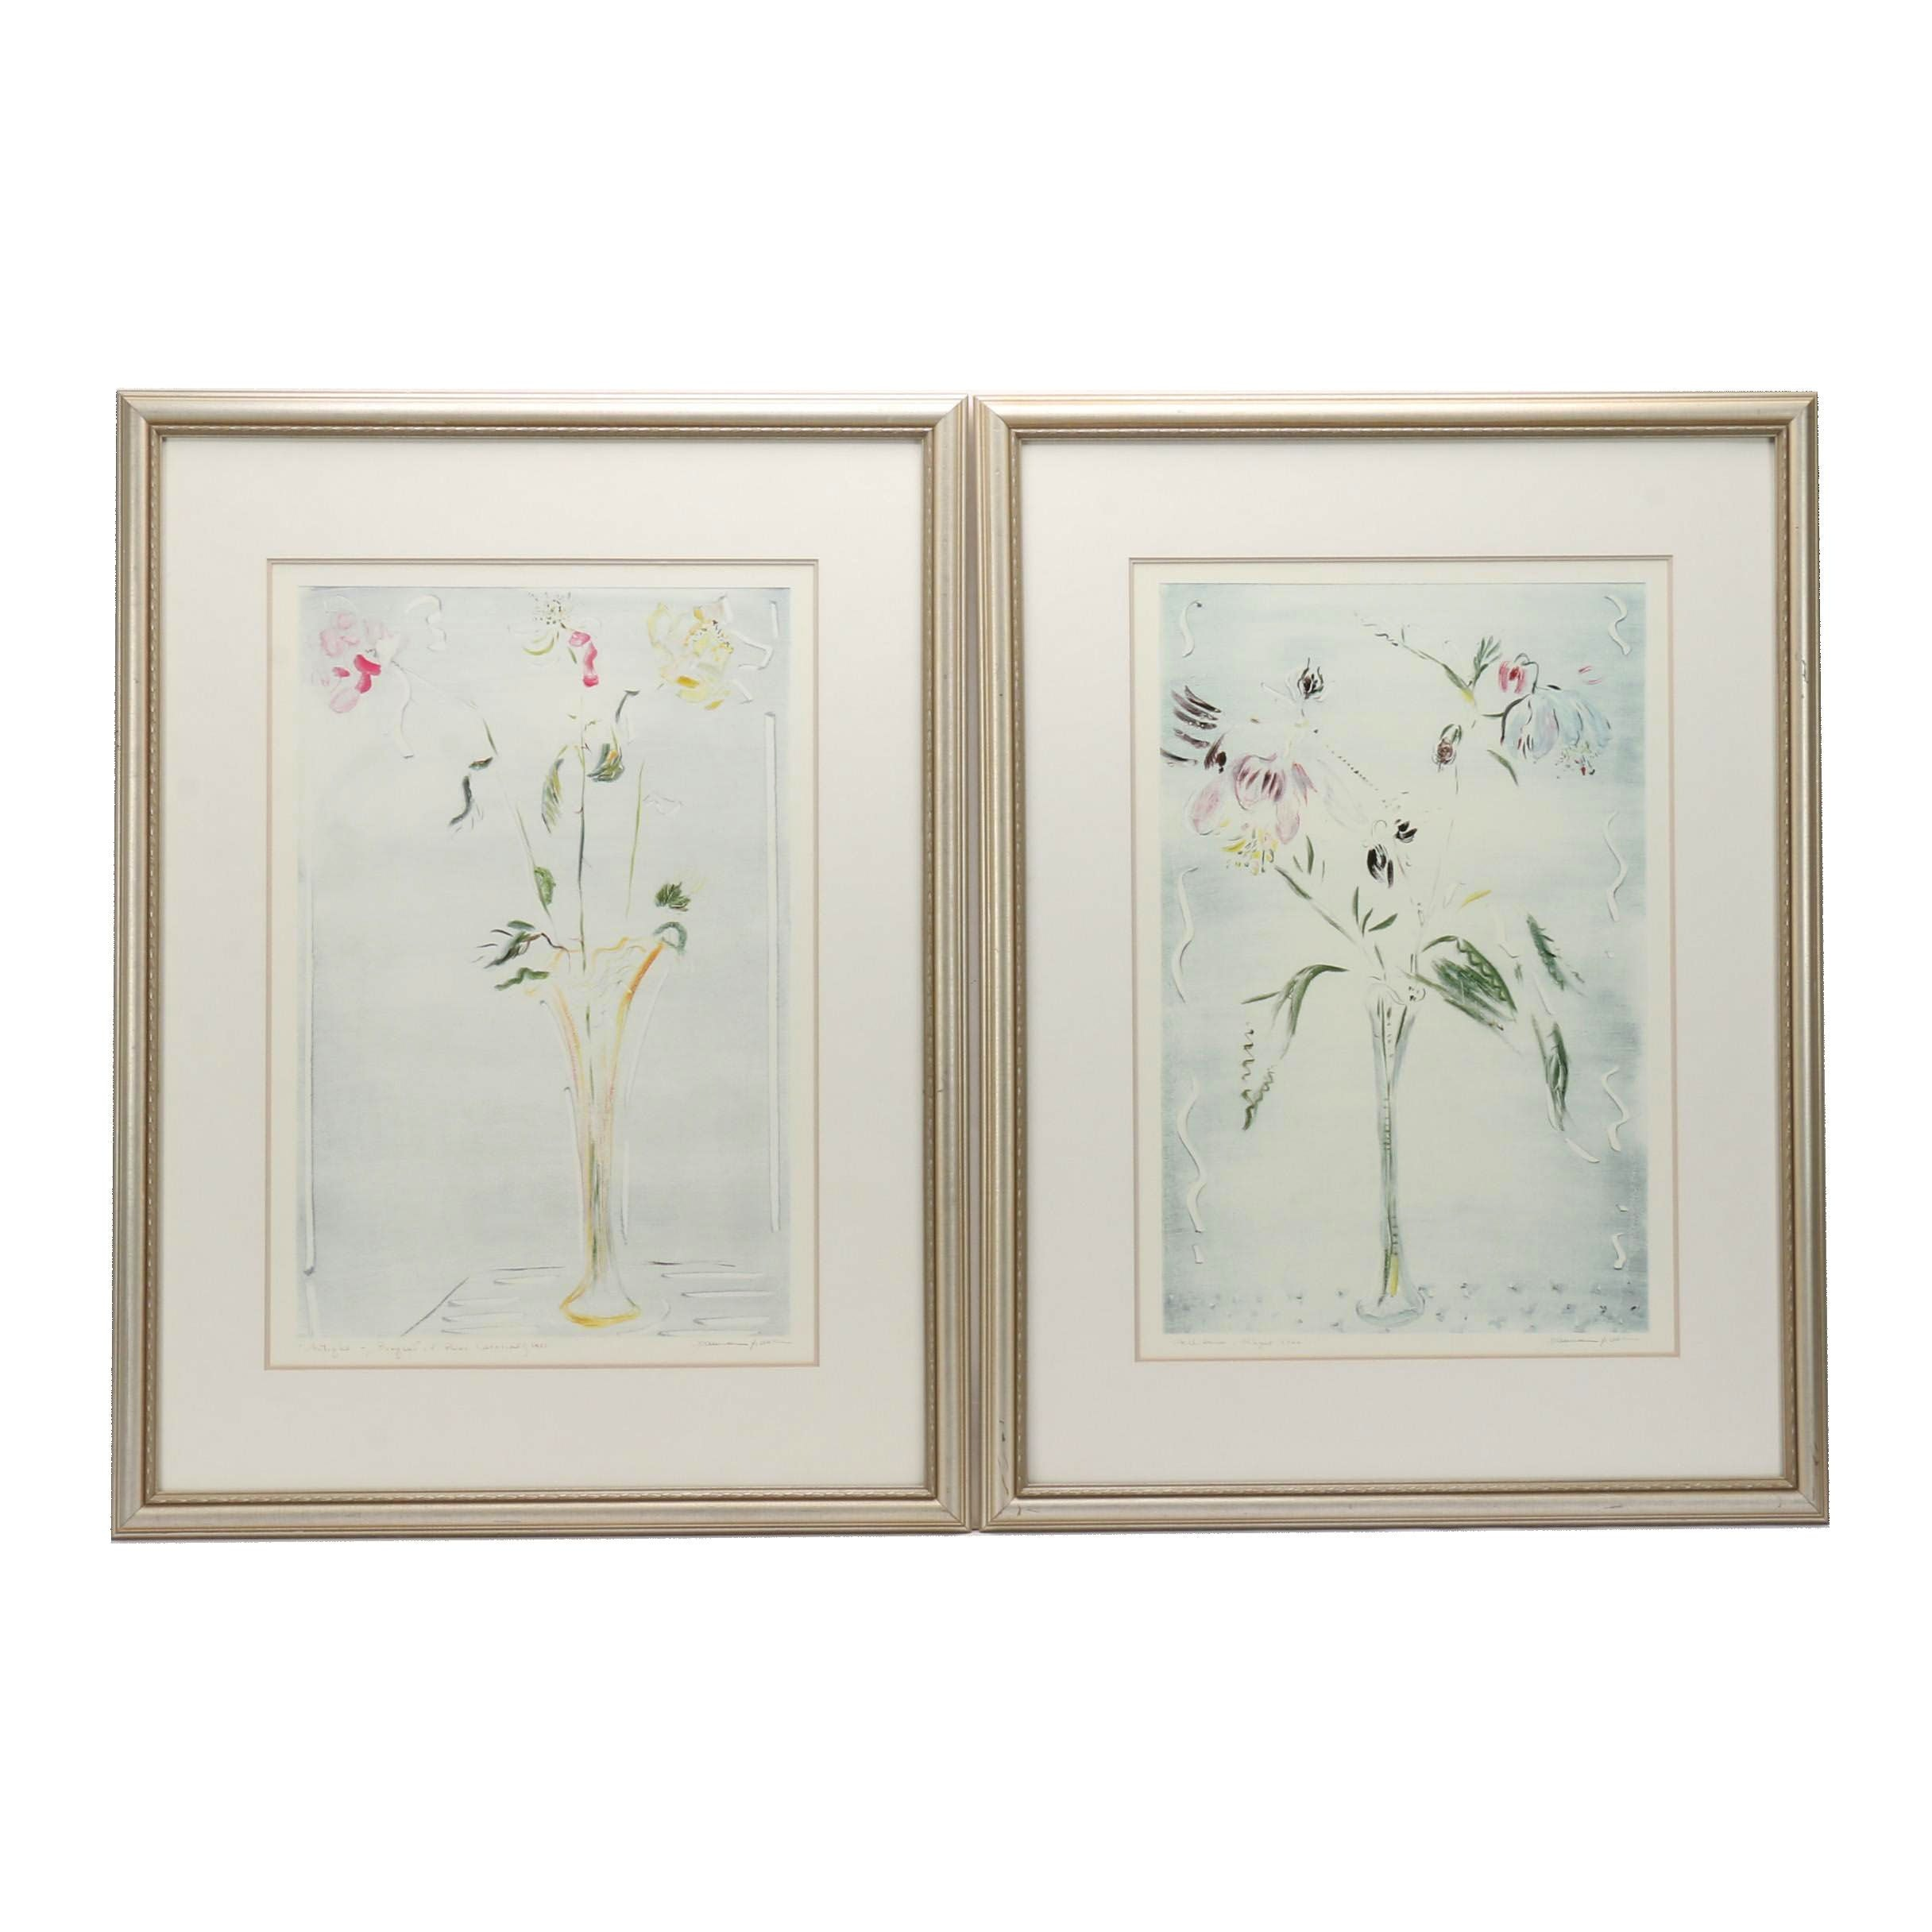 Joanne Isaac Offset Lithographs of Flowers in Vases